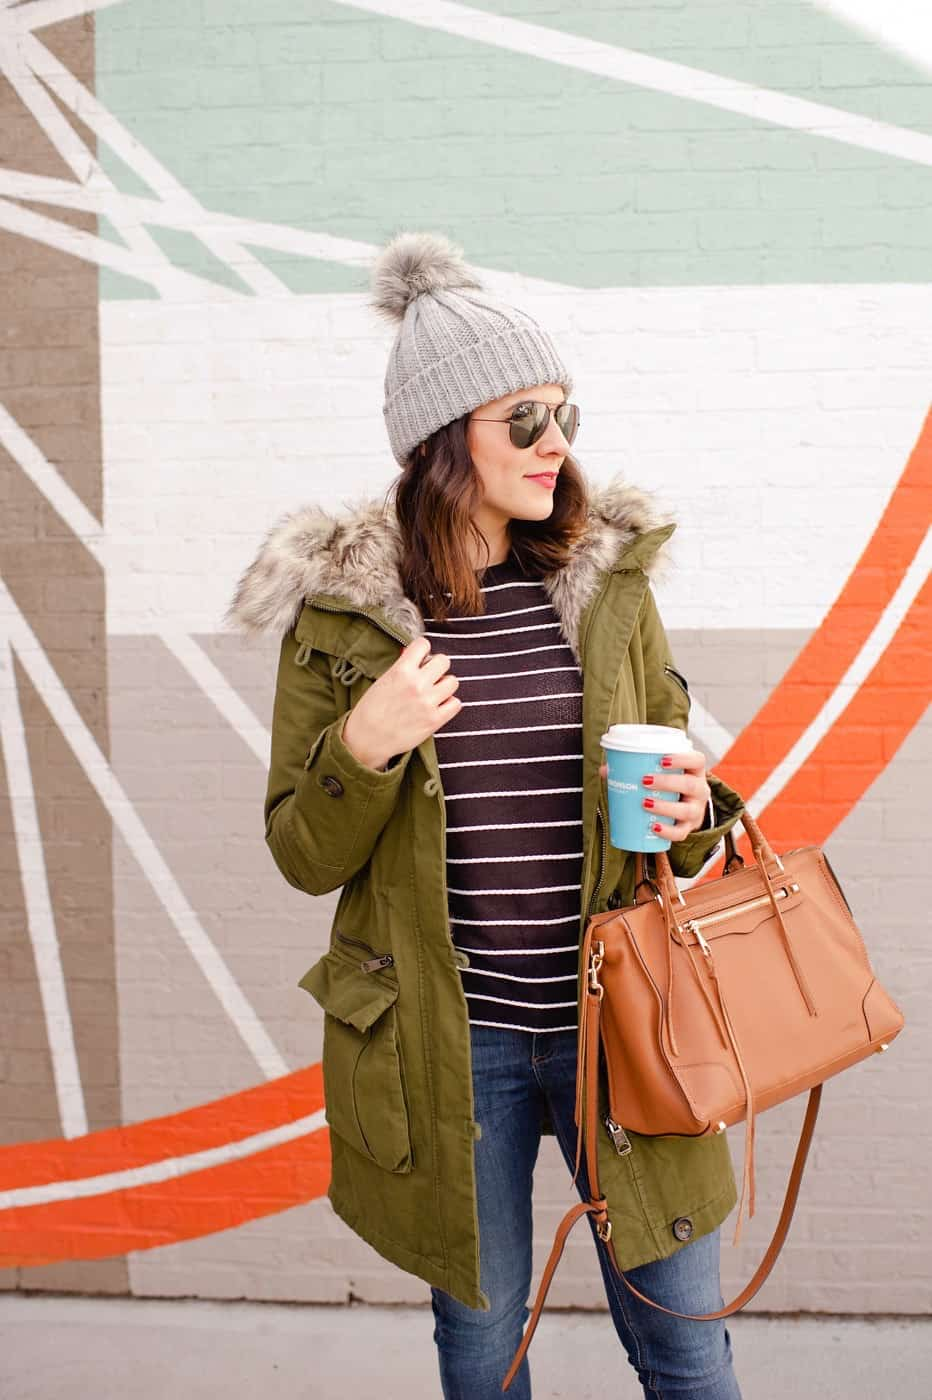 J. Crew Navy New Balance Sneakers For Women, Topshop fur lined parka - @mystylevita